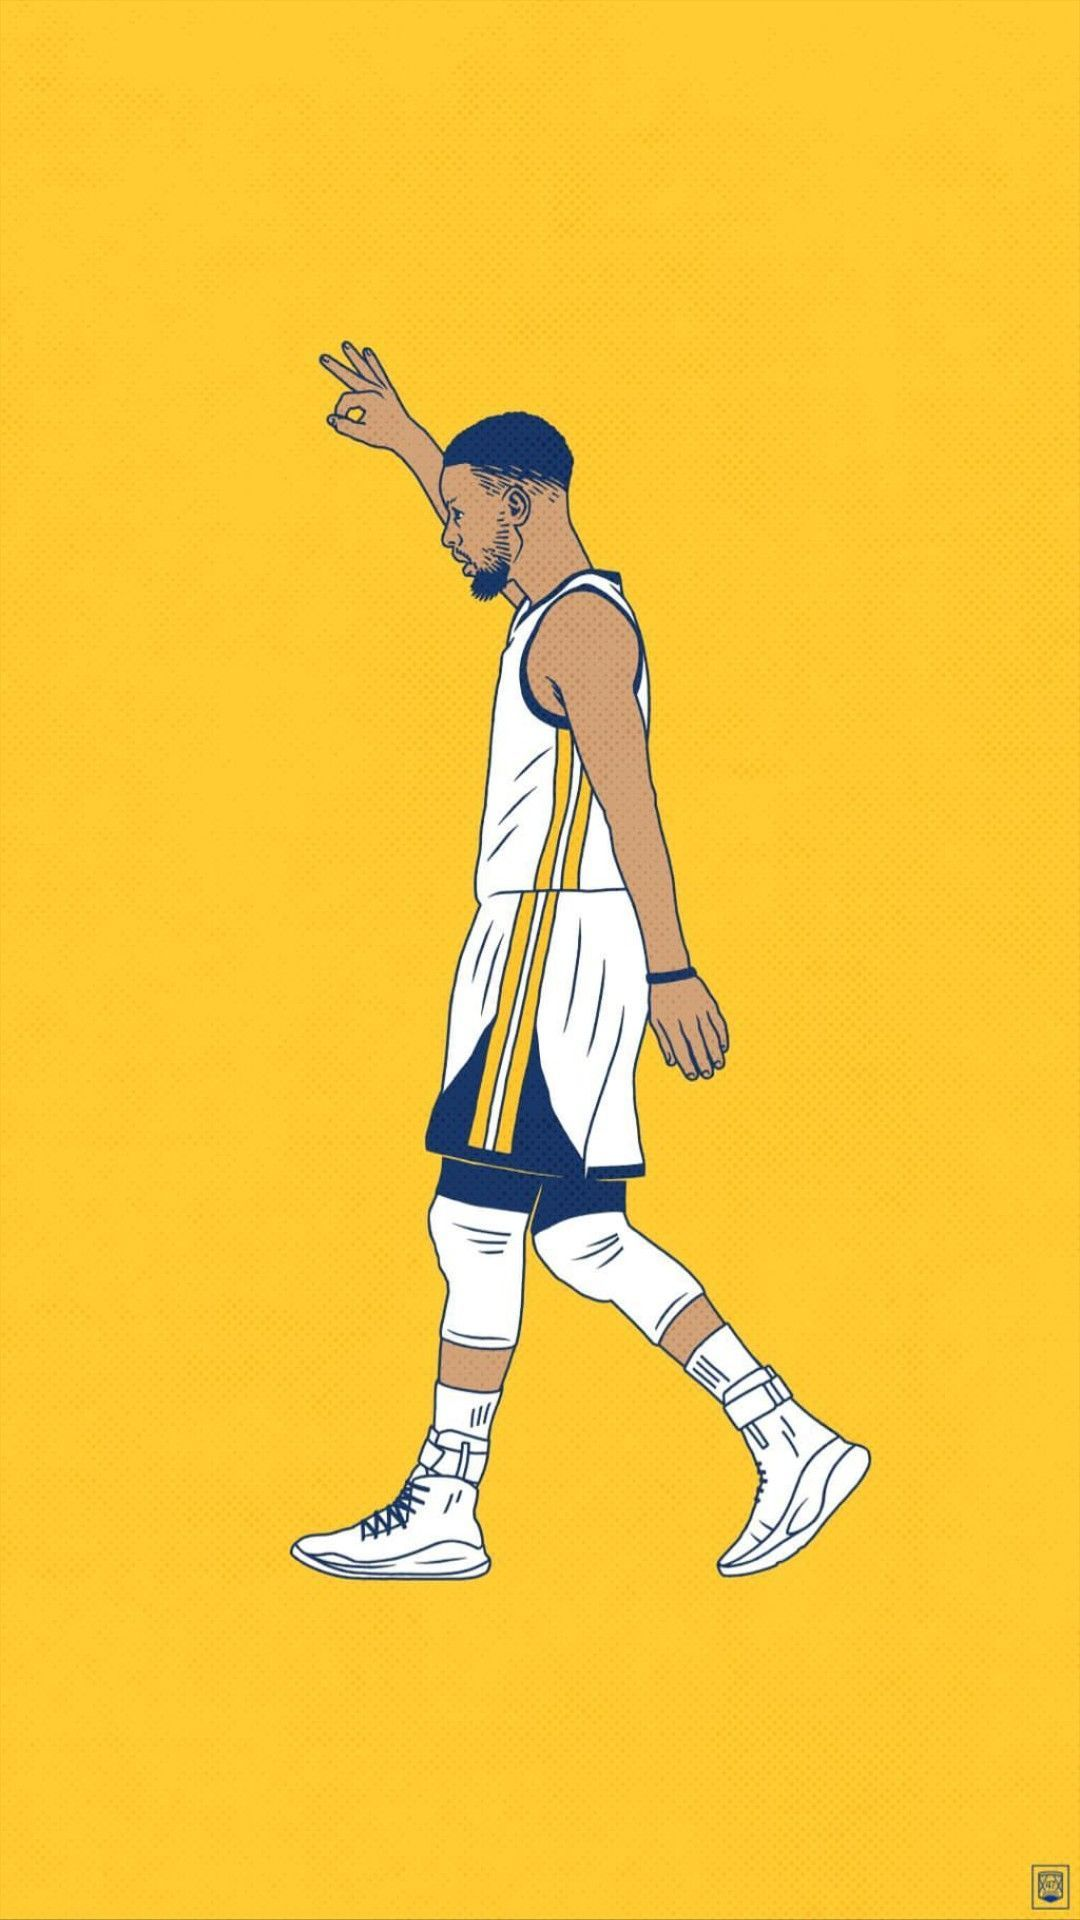 Pin By Airbuds On Airbuds Curry Nba Nba Stephen Curry Nba Basketball Art